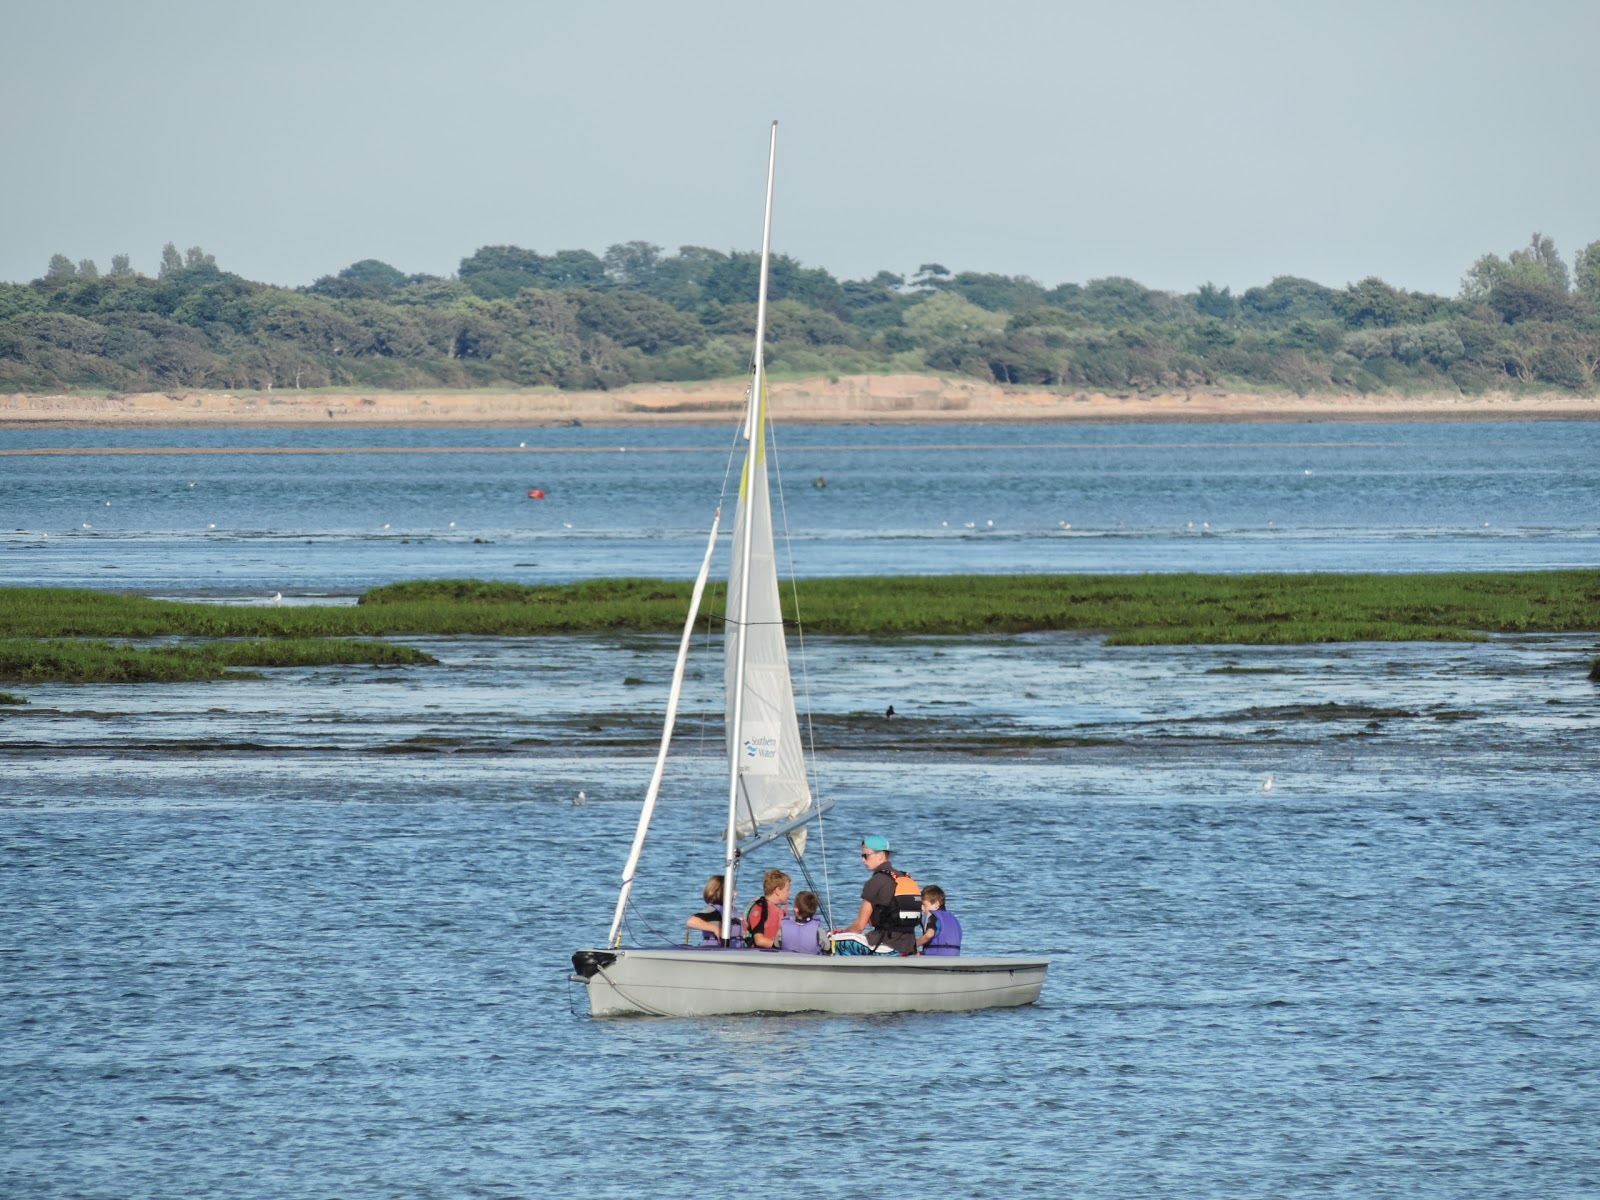 training yacht for sea cadets